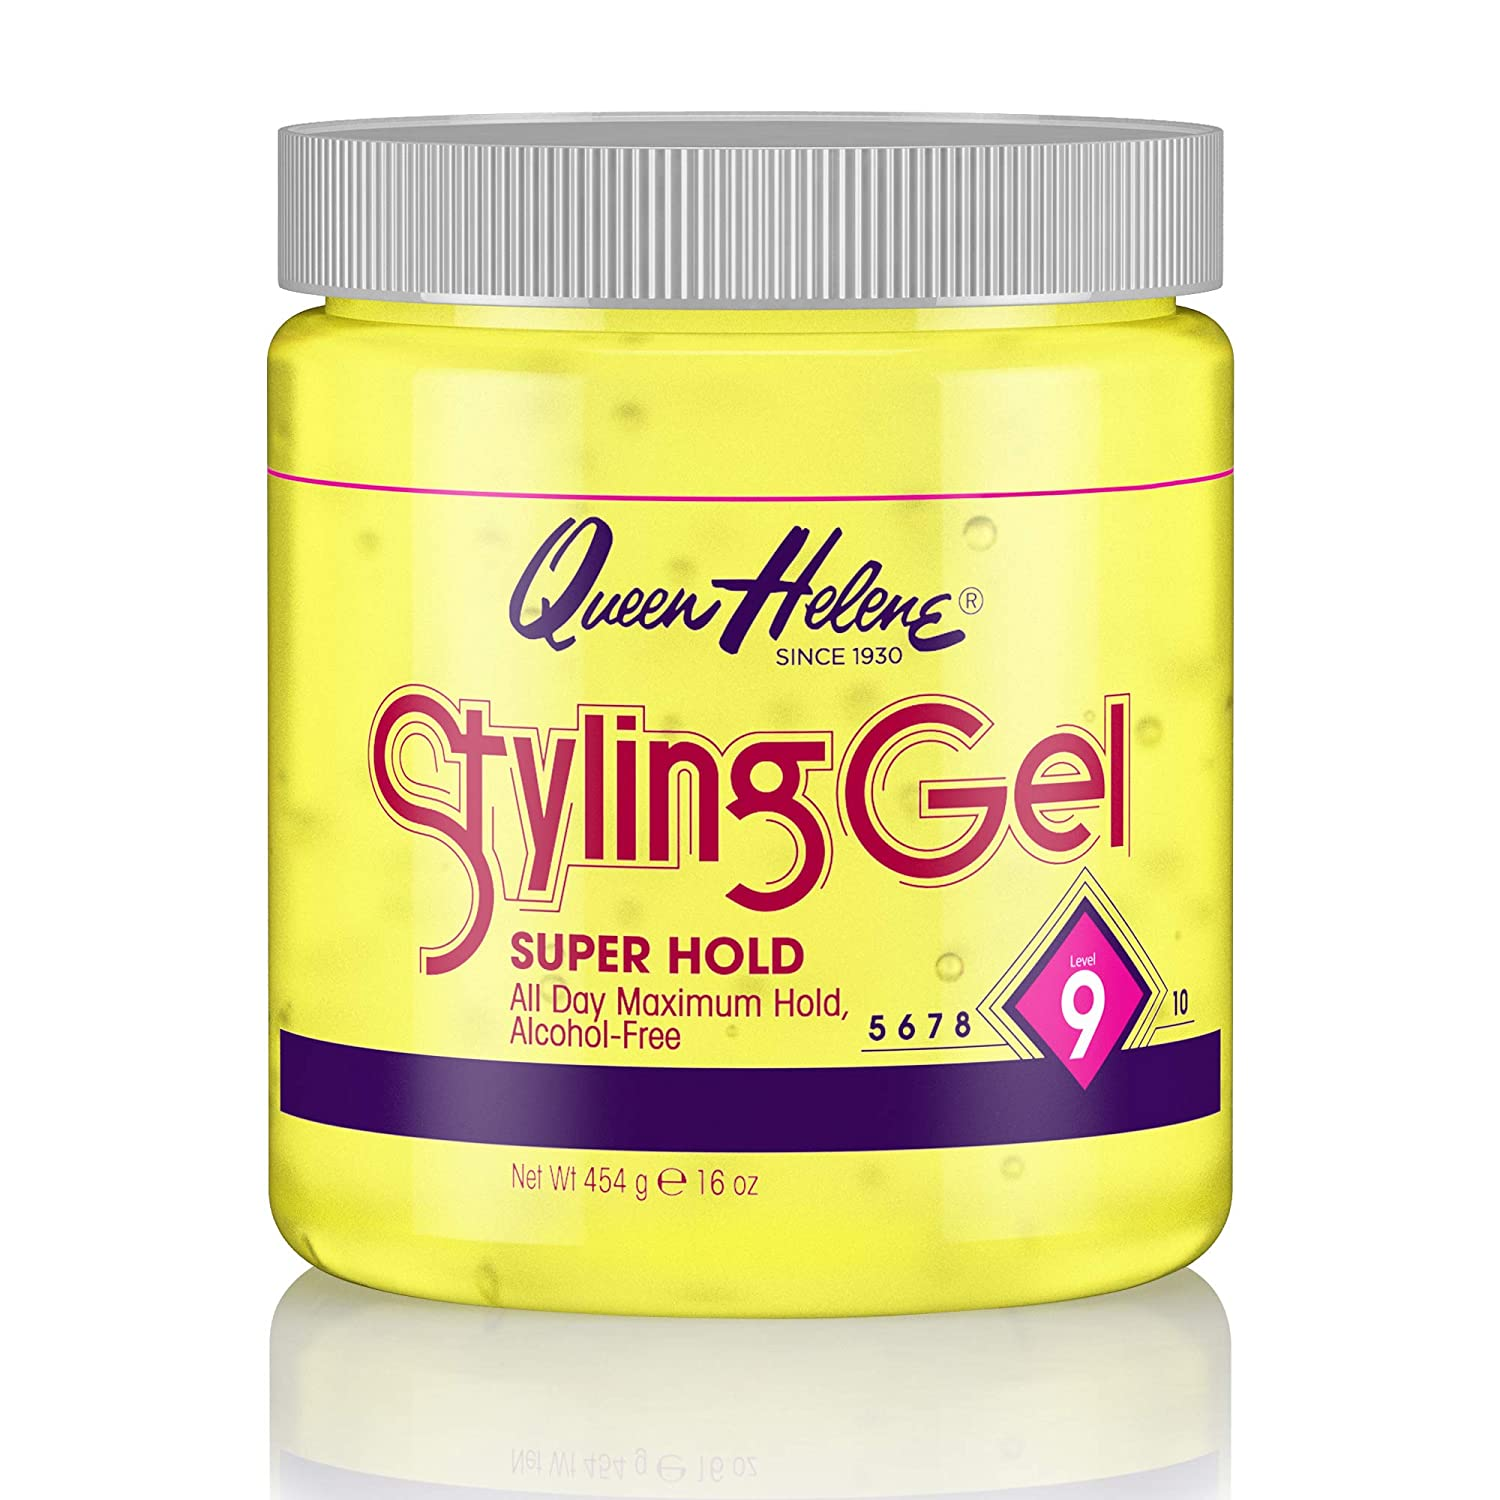 Queen Helene Styling Gel Super Hold Packaging Ounce 16 May Same day shipping shopping Va